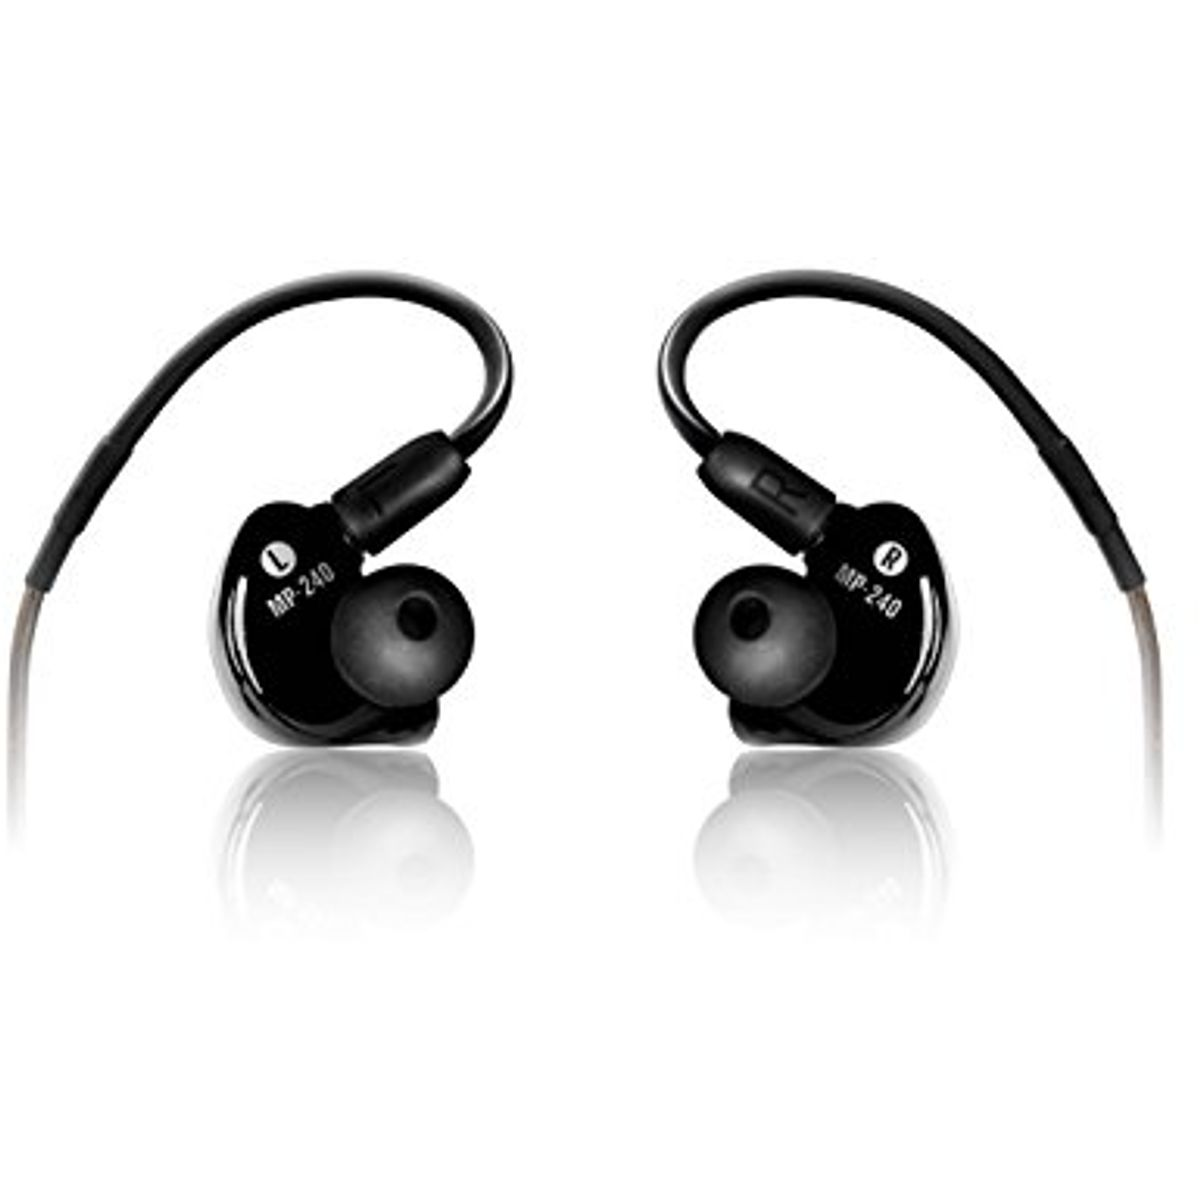 Mackie MP-240 Professionelle In-Ear-Monitore mit Dual-Hybrid-Treiber